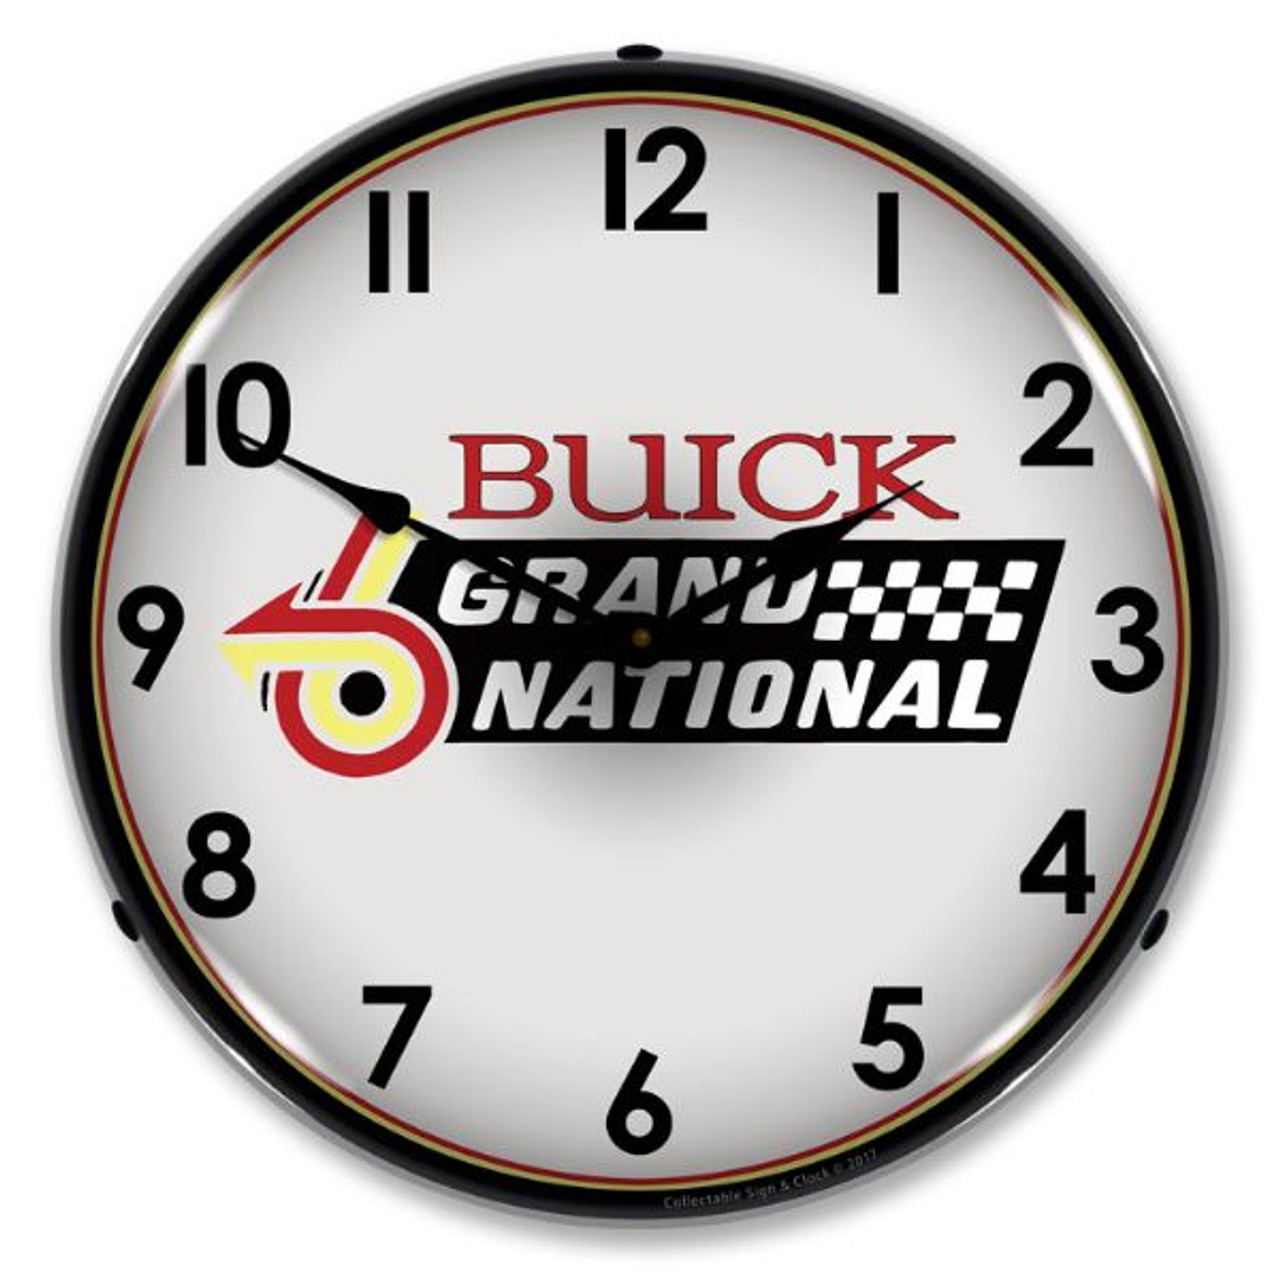 Buick Grand National Logo Lighted Wall Clock 14 x 14 Inches